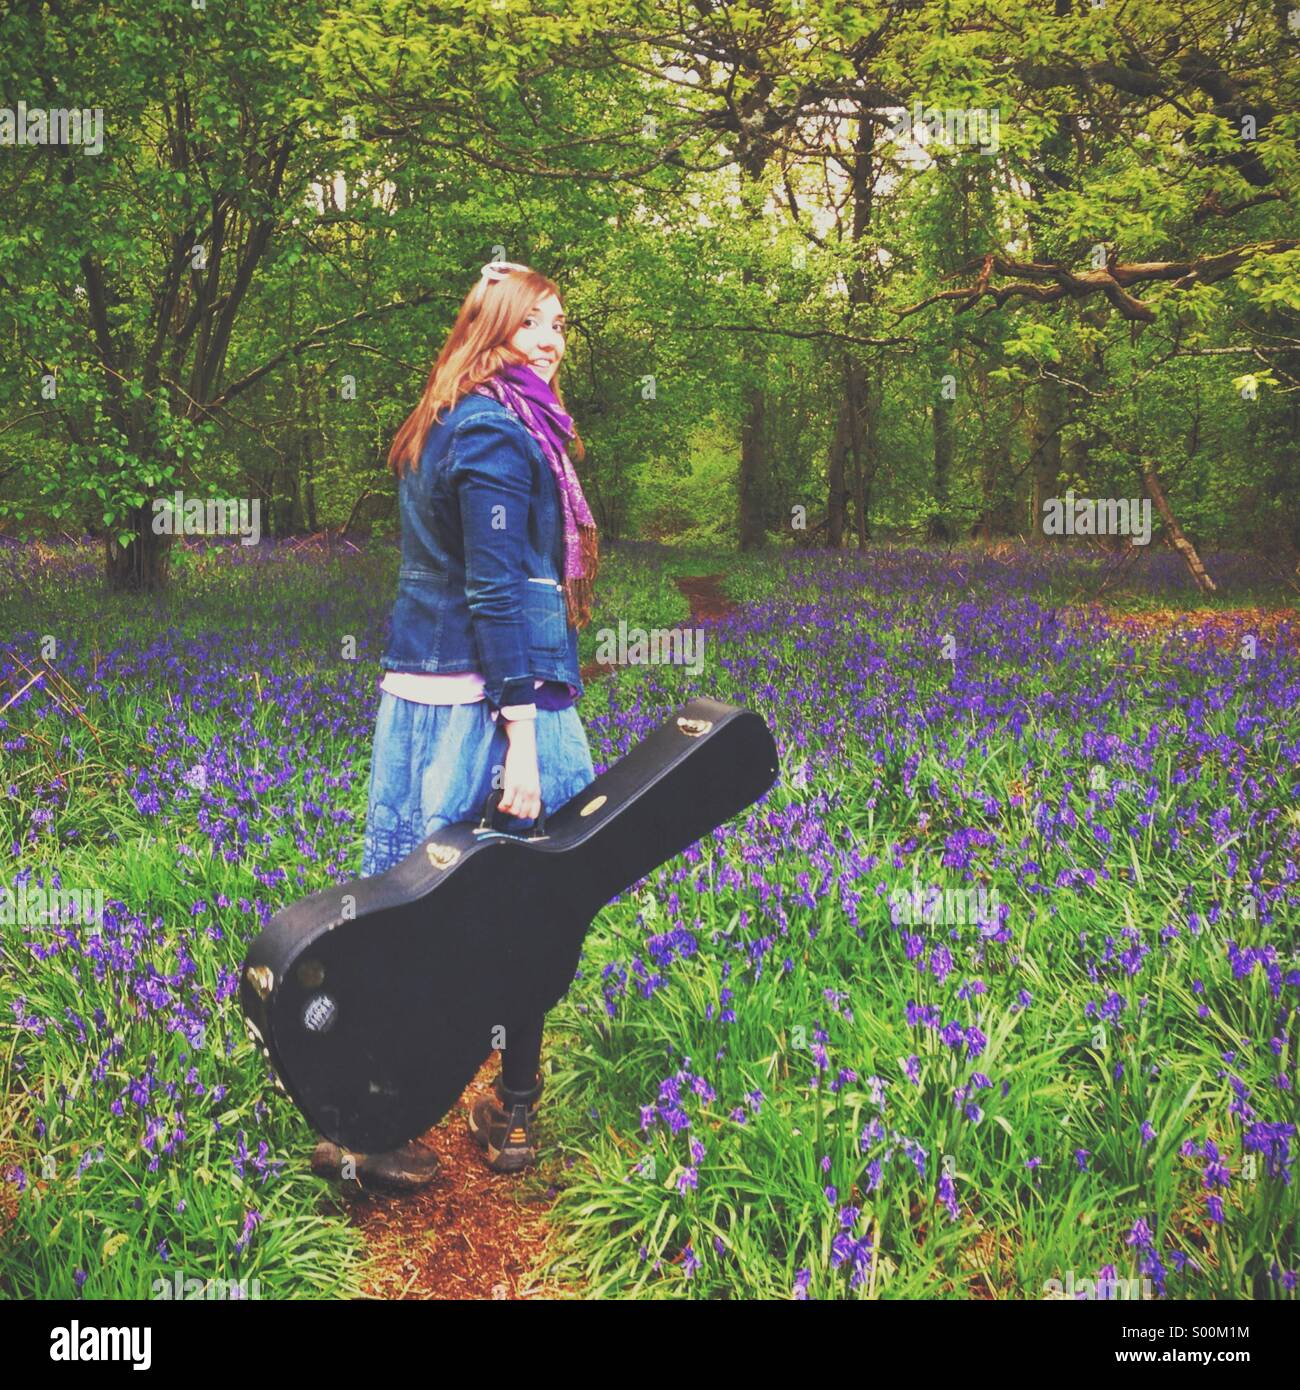 Woman walking with guitar among bluebells - Stock Image